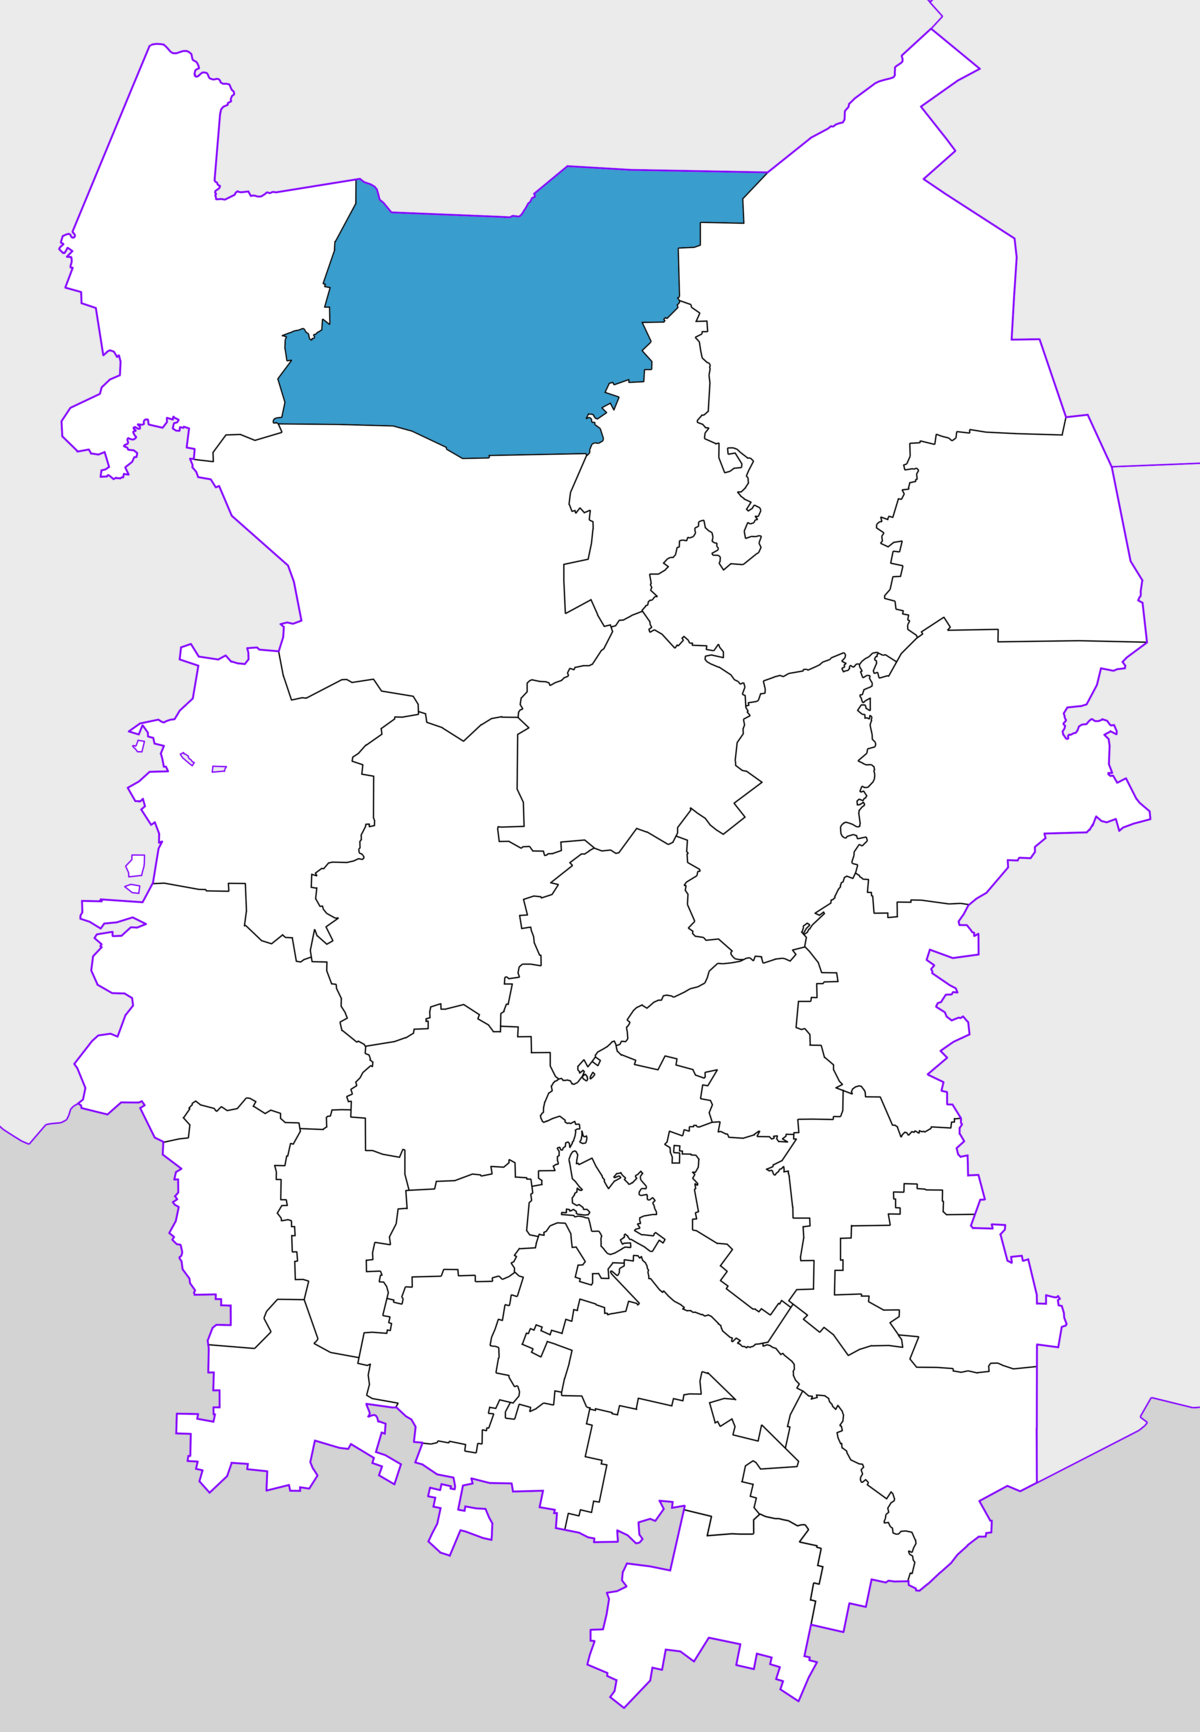 What is the federal district of Omsk, and where is it located 74